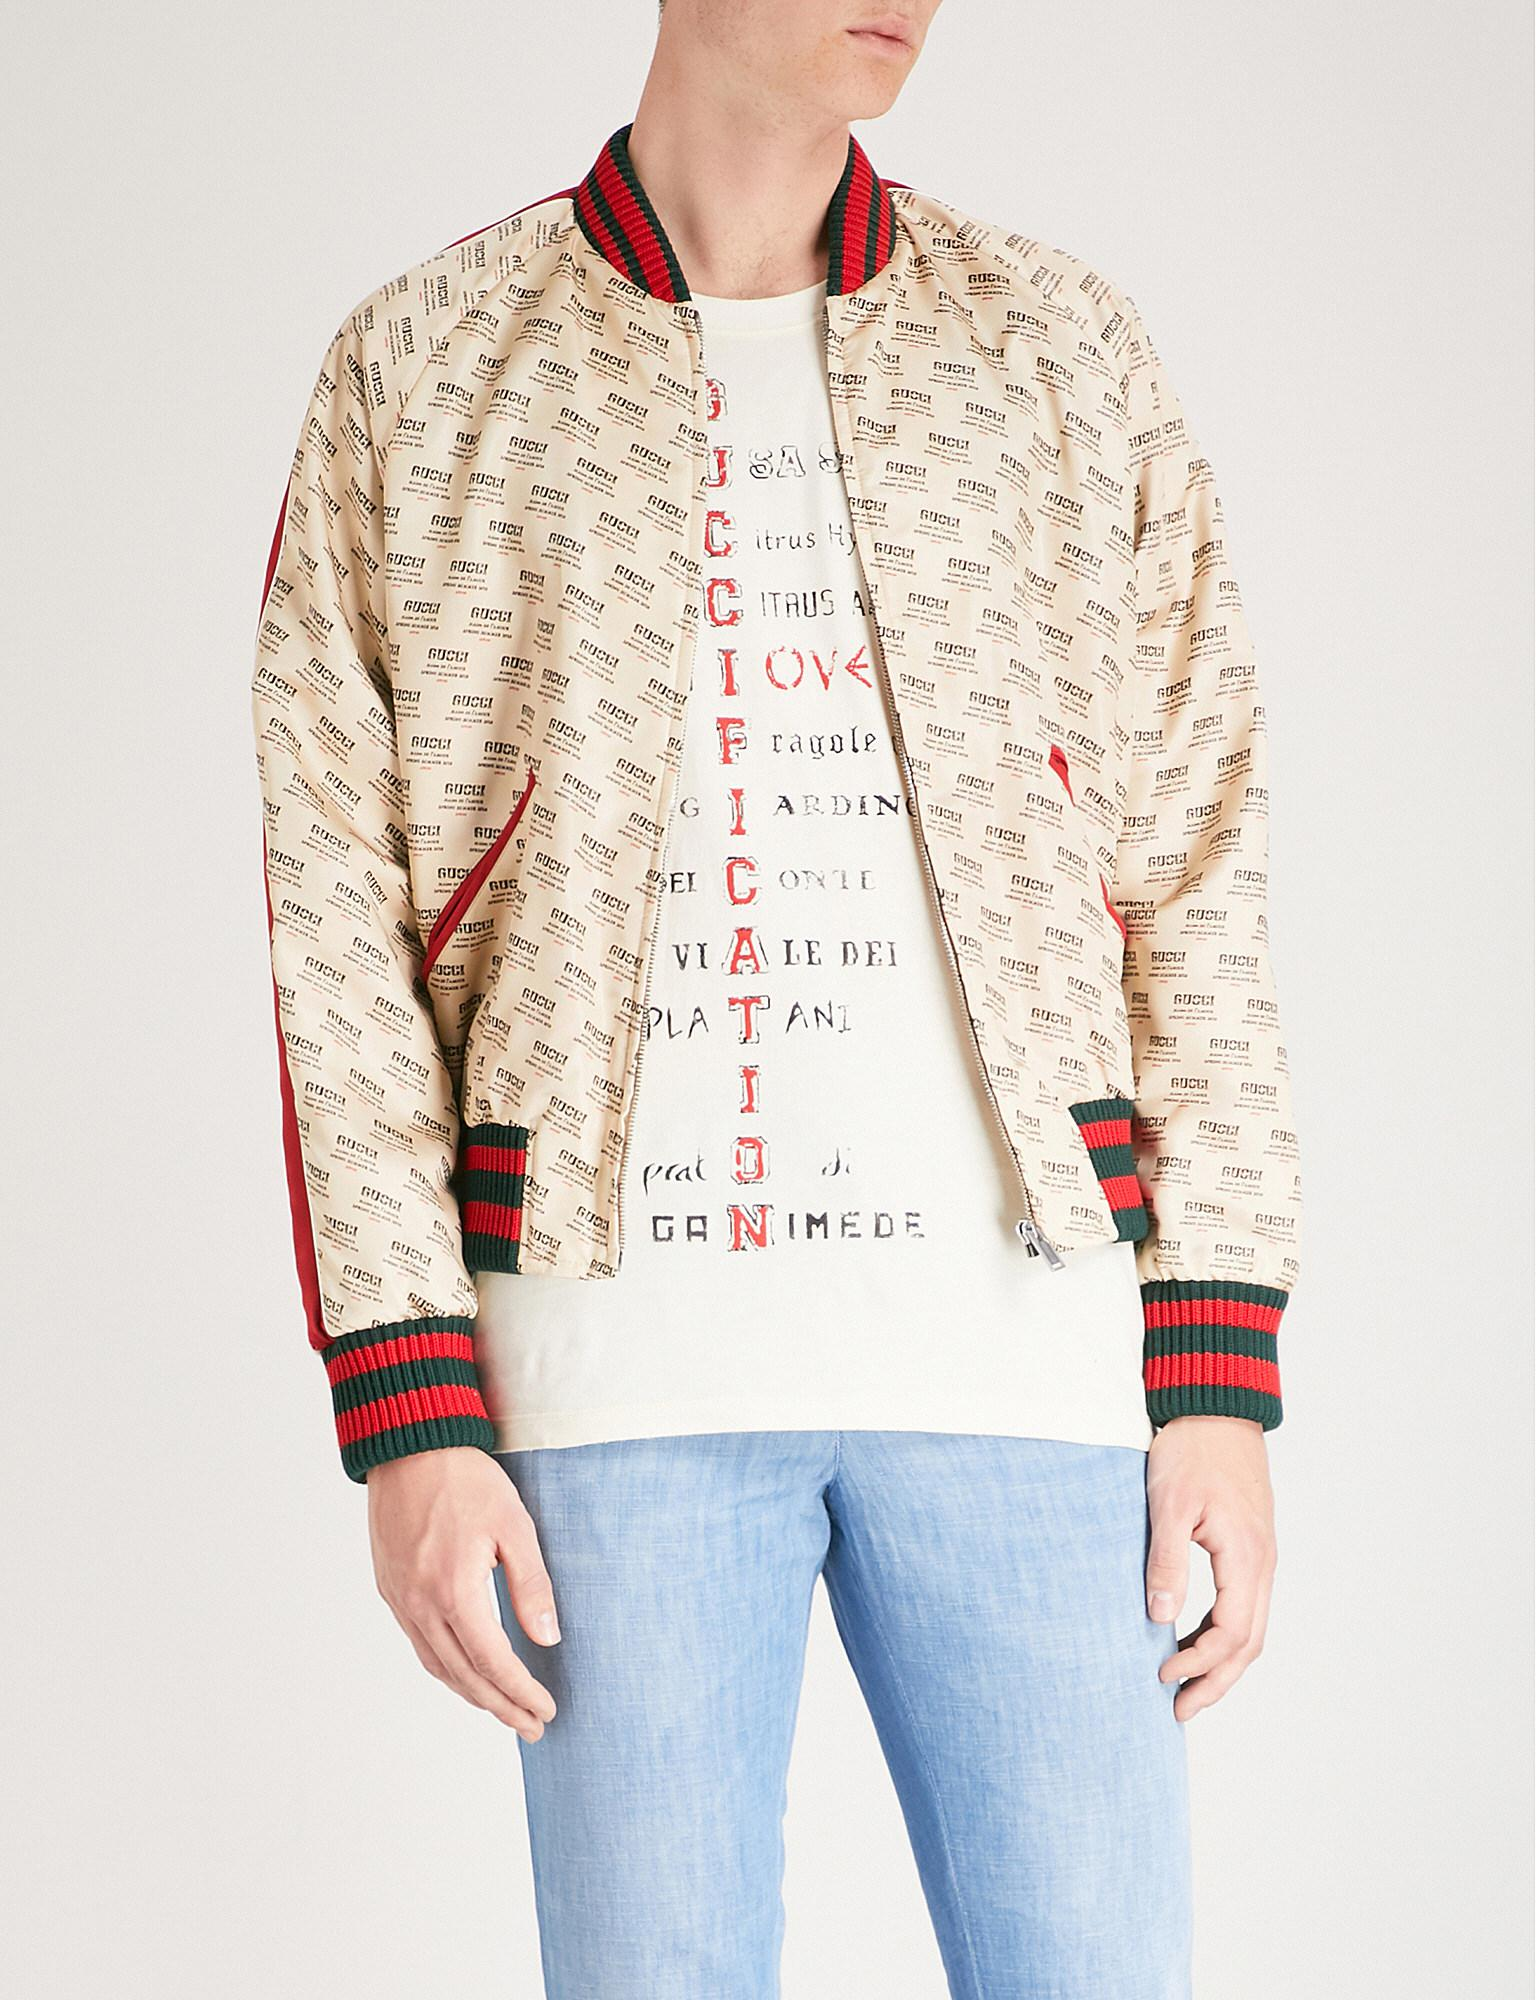 9b6d555f672 Gucci Stamp-print Satin Bomber Jacket in White for Men - Lyst